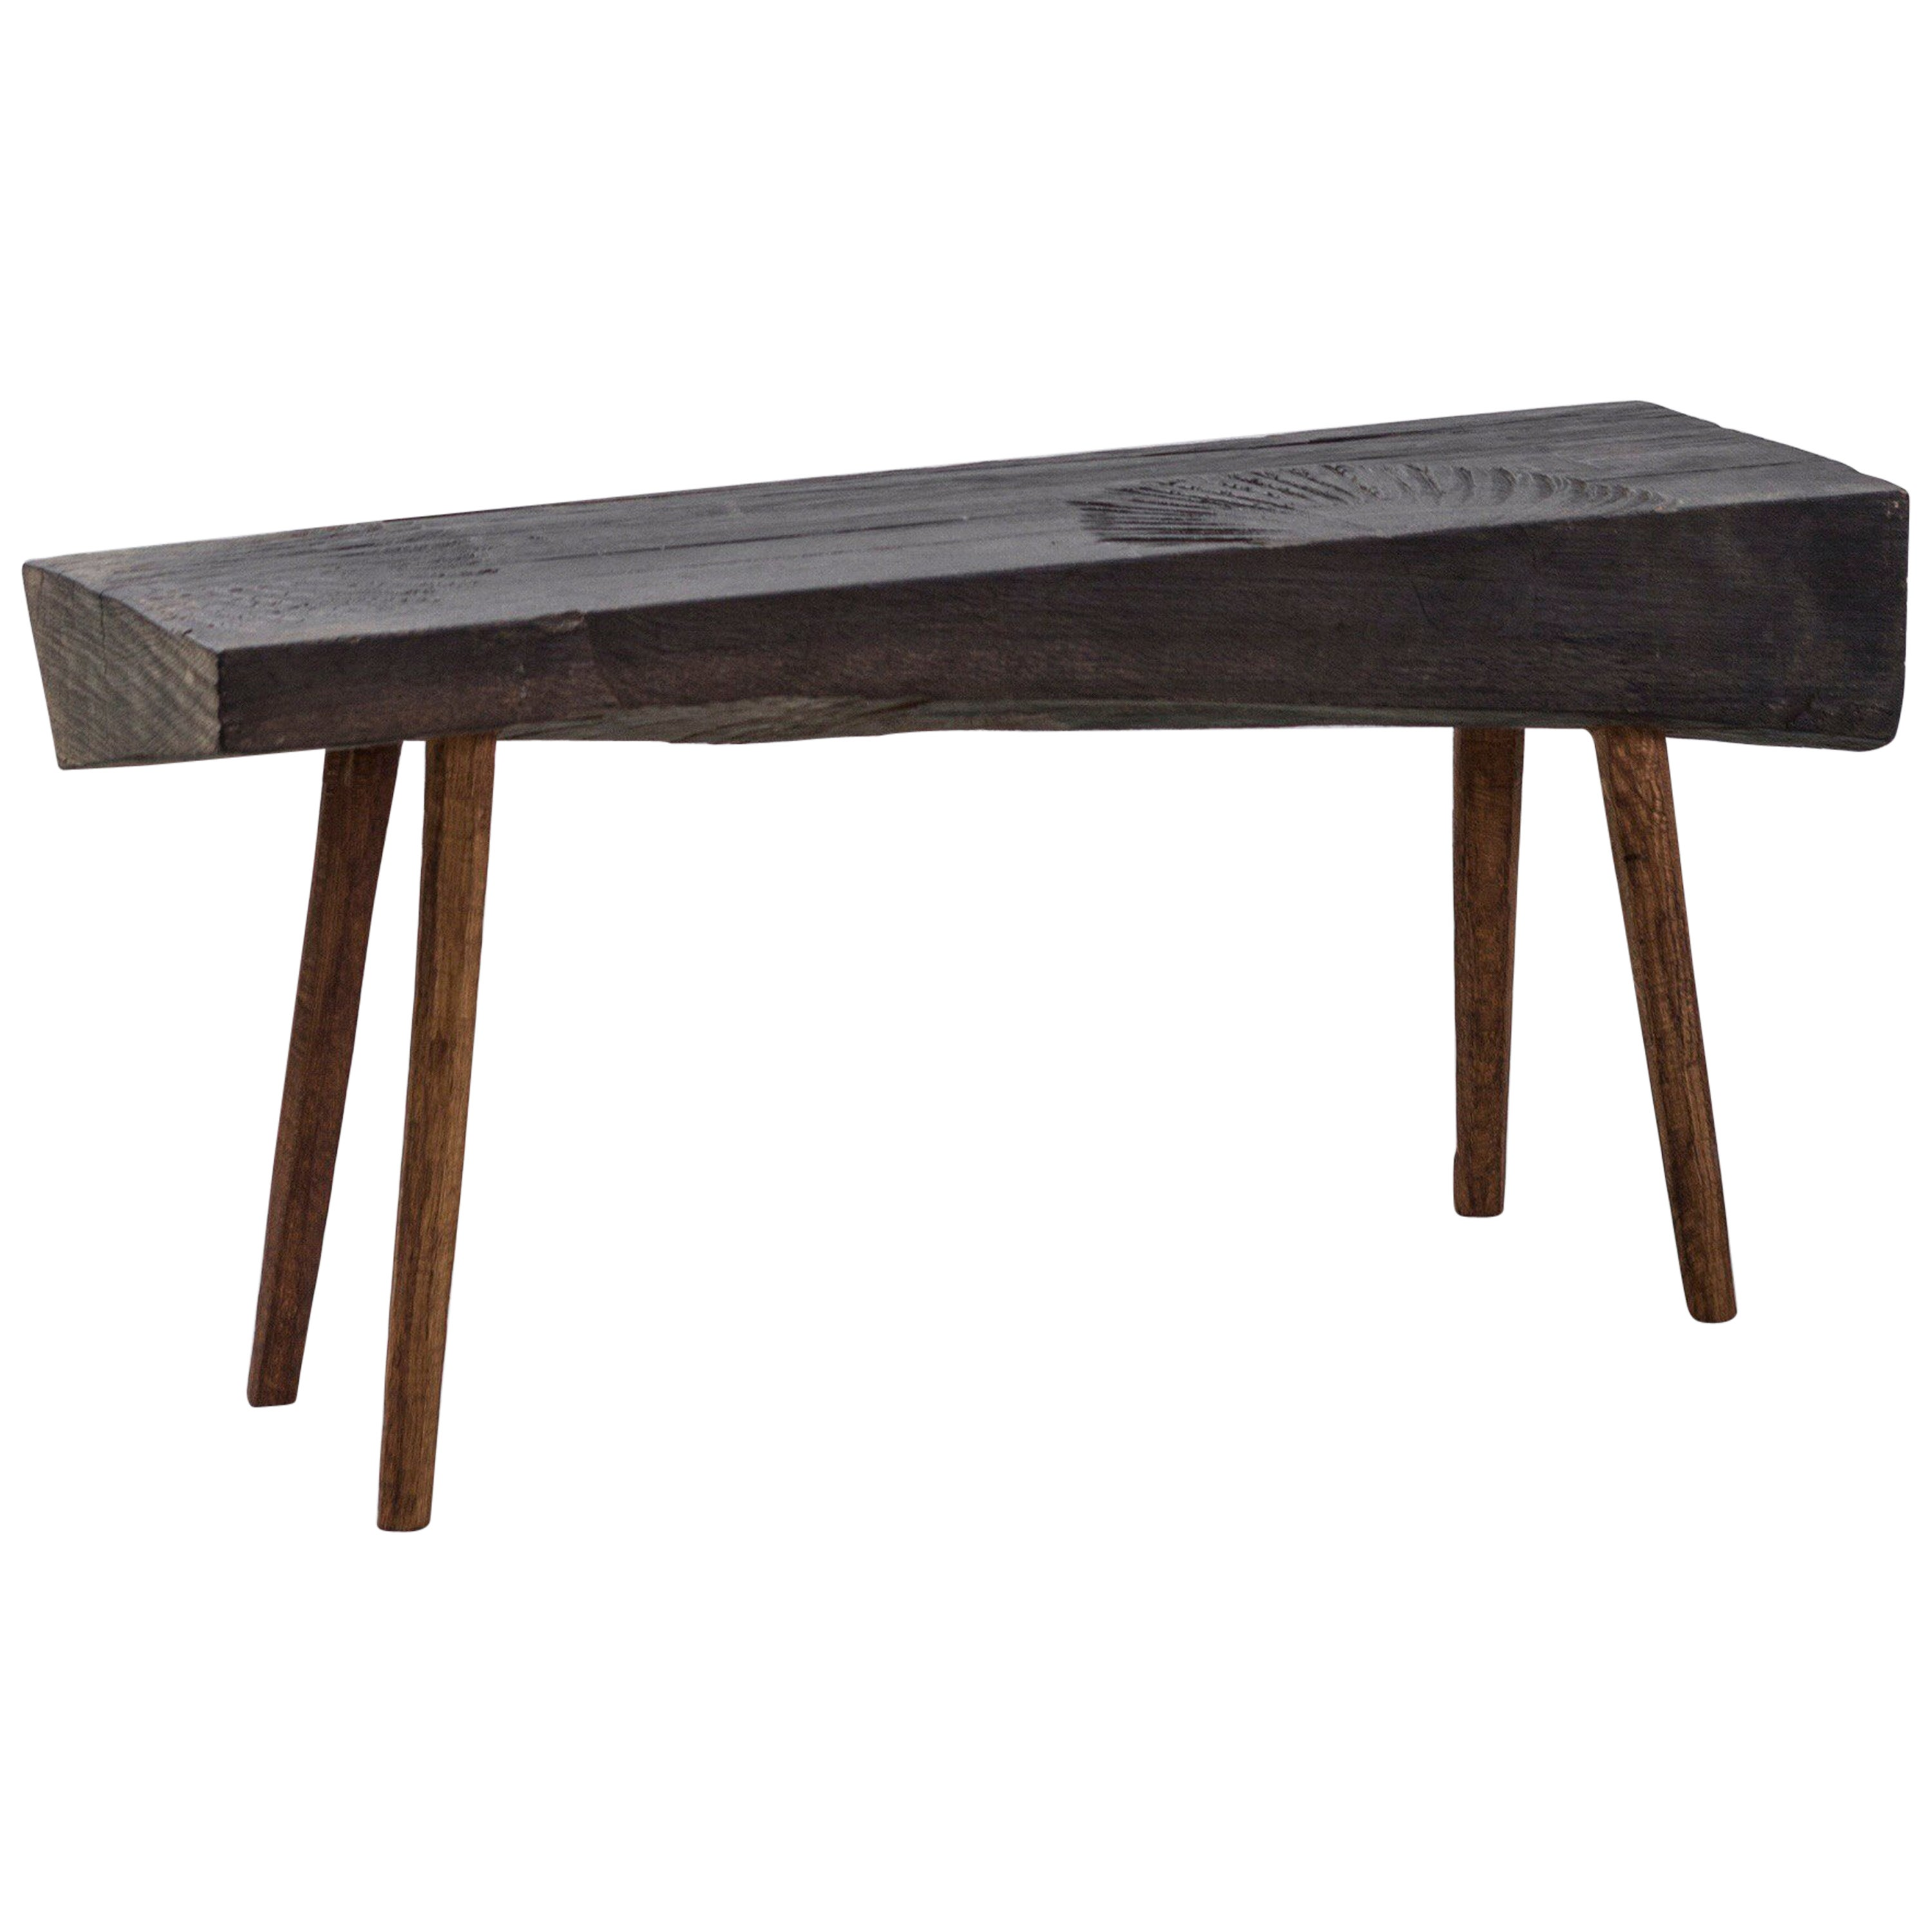 Contemporary Brutalist Style Small Table #4 in Solid Oak and Linseed Oil